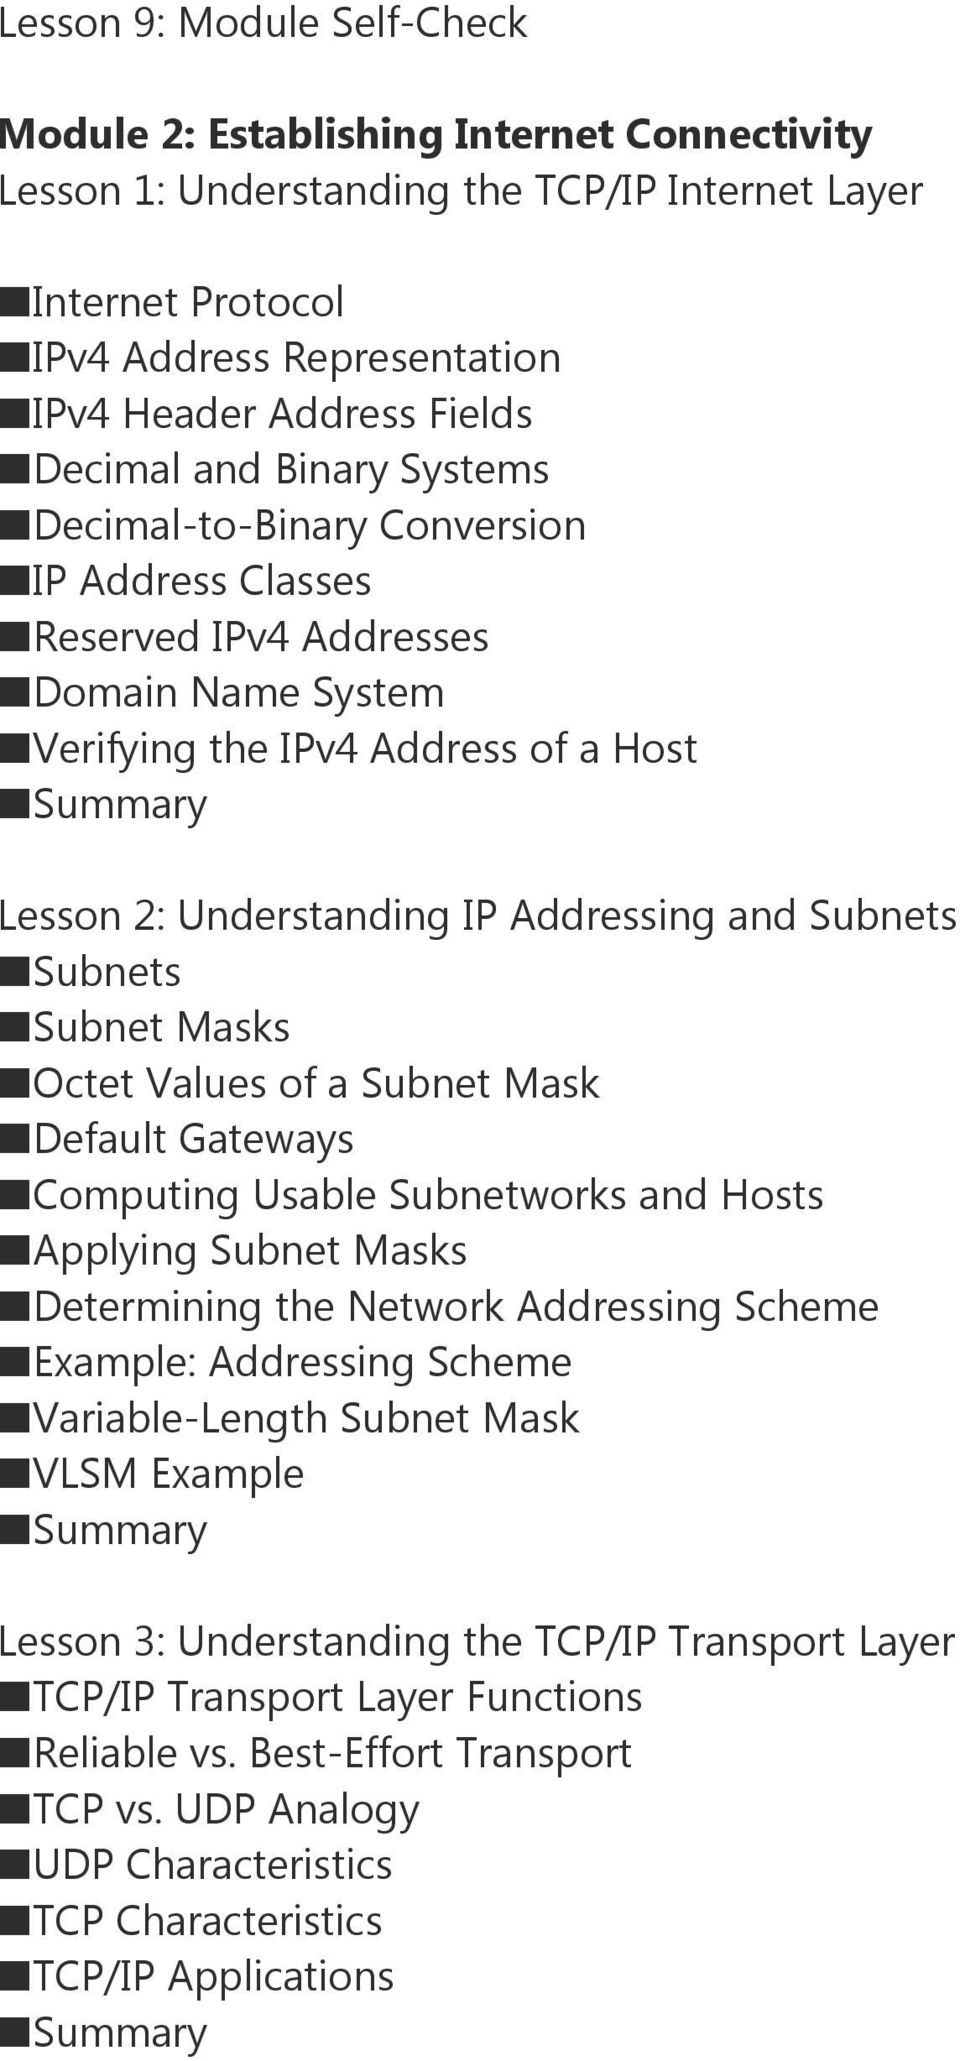 Subnets Subnets Subnet Masks Octet Values of a Subnet Mask Default Gateways Computing Usable Subnetworks and Hosts Applying Subnet Masks Determining the Network Addressing Scheme Example: Addressing